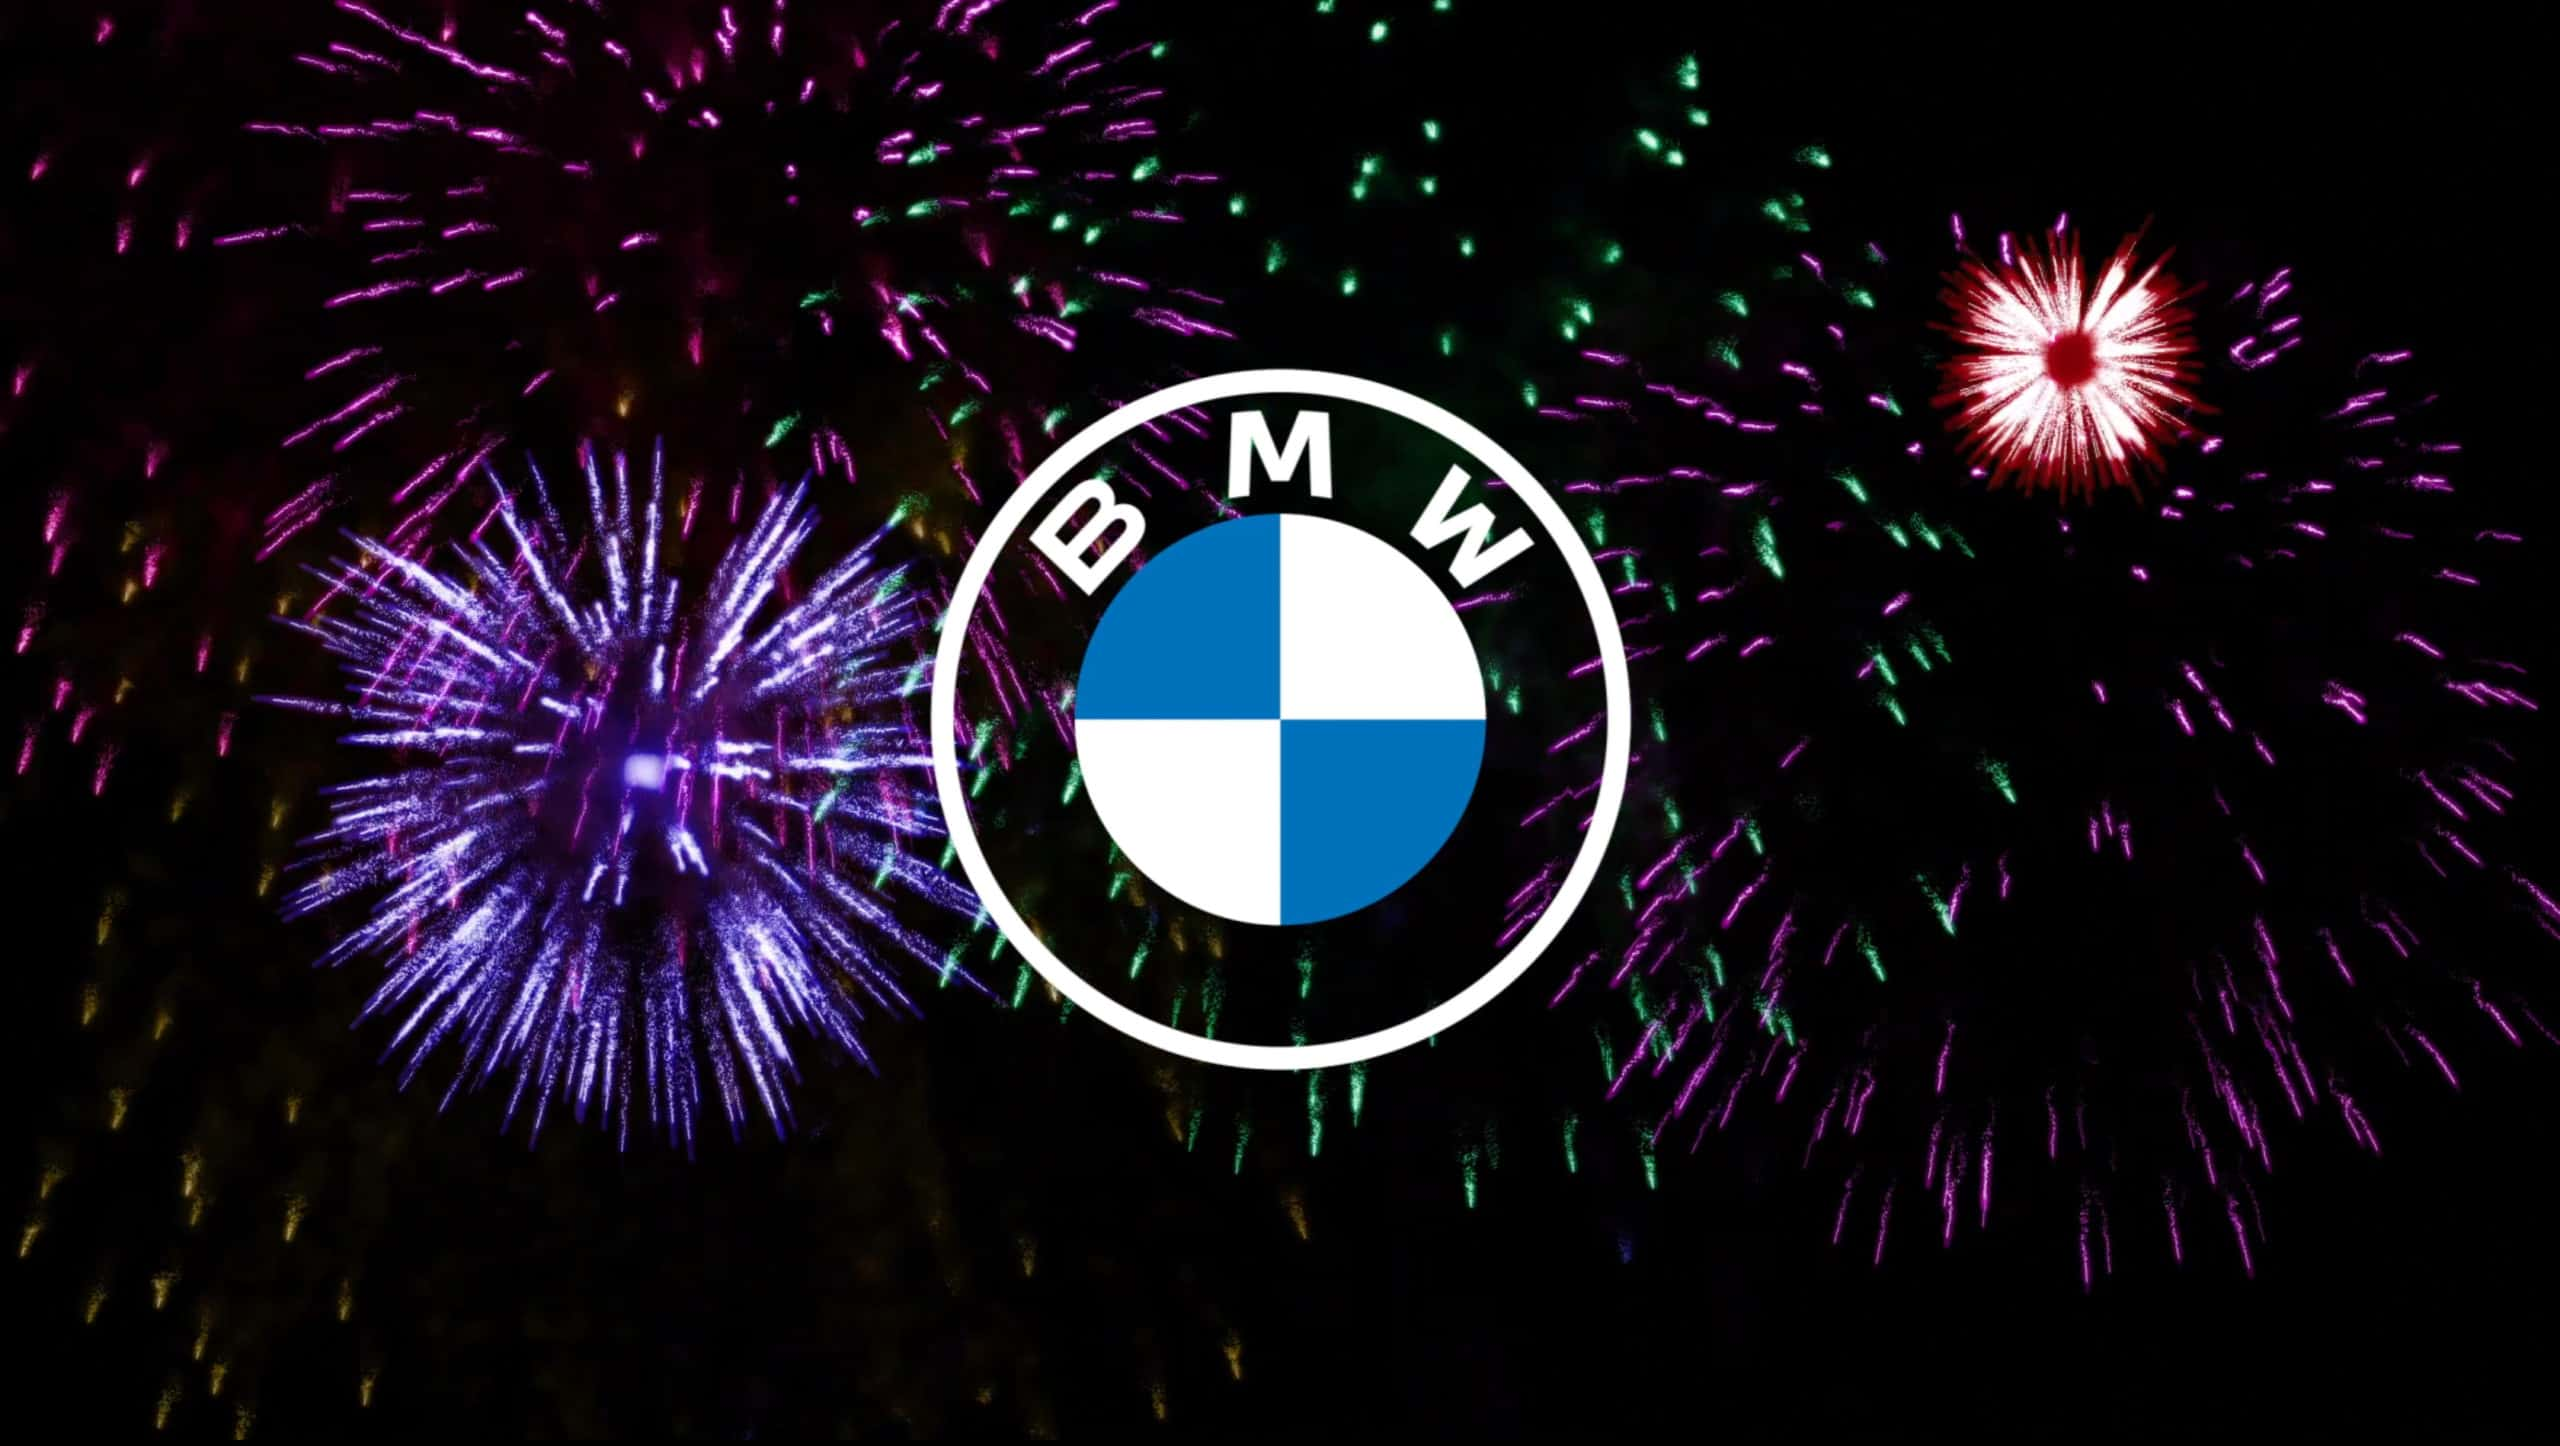 new bmw logo with fireworks